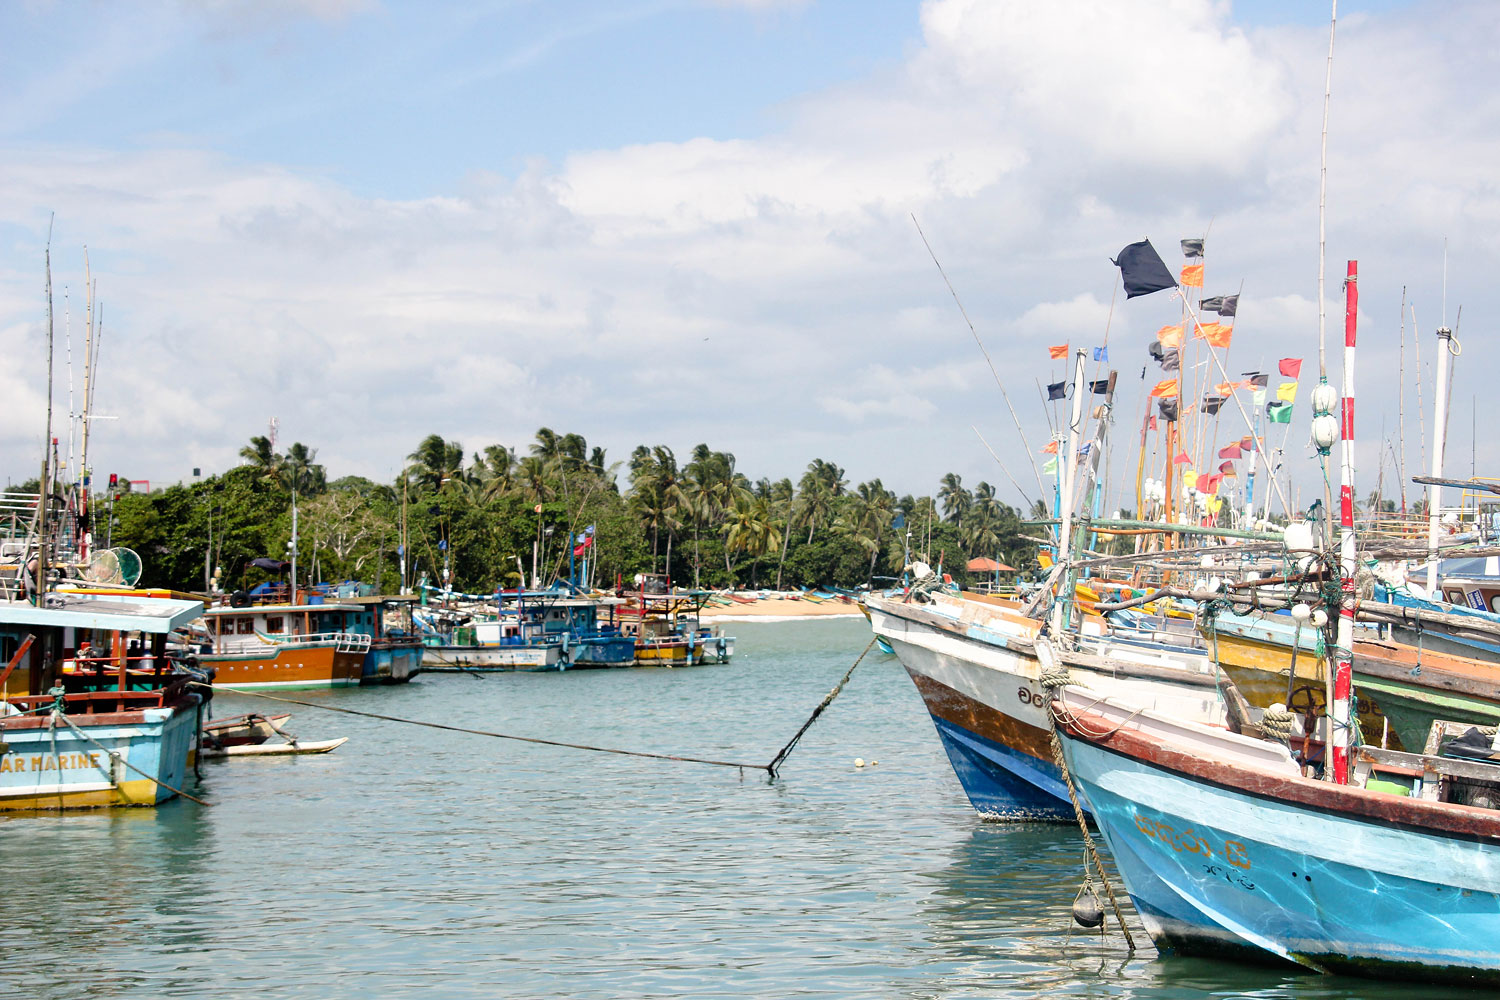 Sri_Lankan_Travel_Guide_Itinerary_Budgeting_Tangalle_New_Year's_Eve_Where_to_stay_Rekwana_Lagoon_beach_what_to_do_harbour.jpg